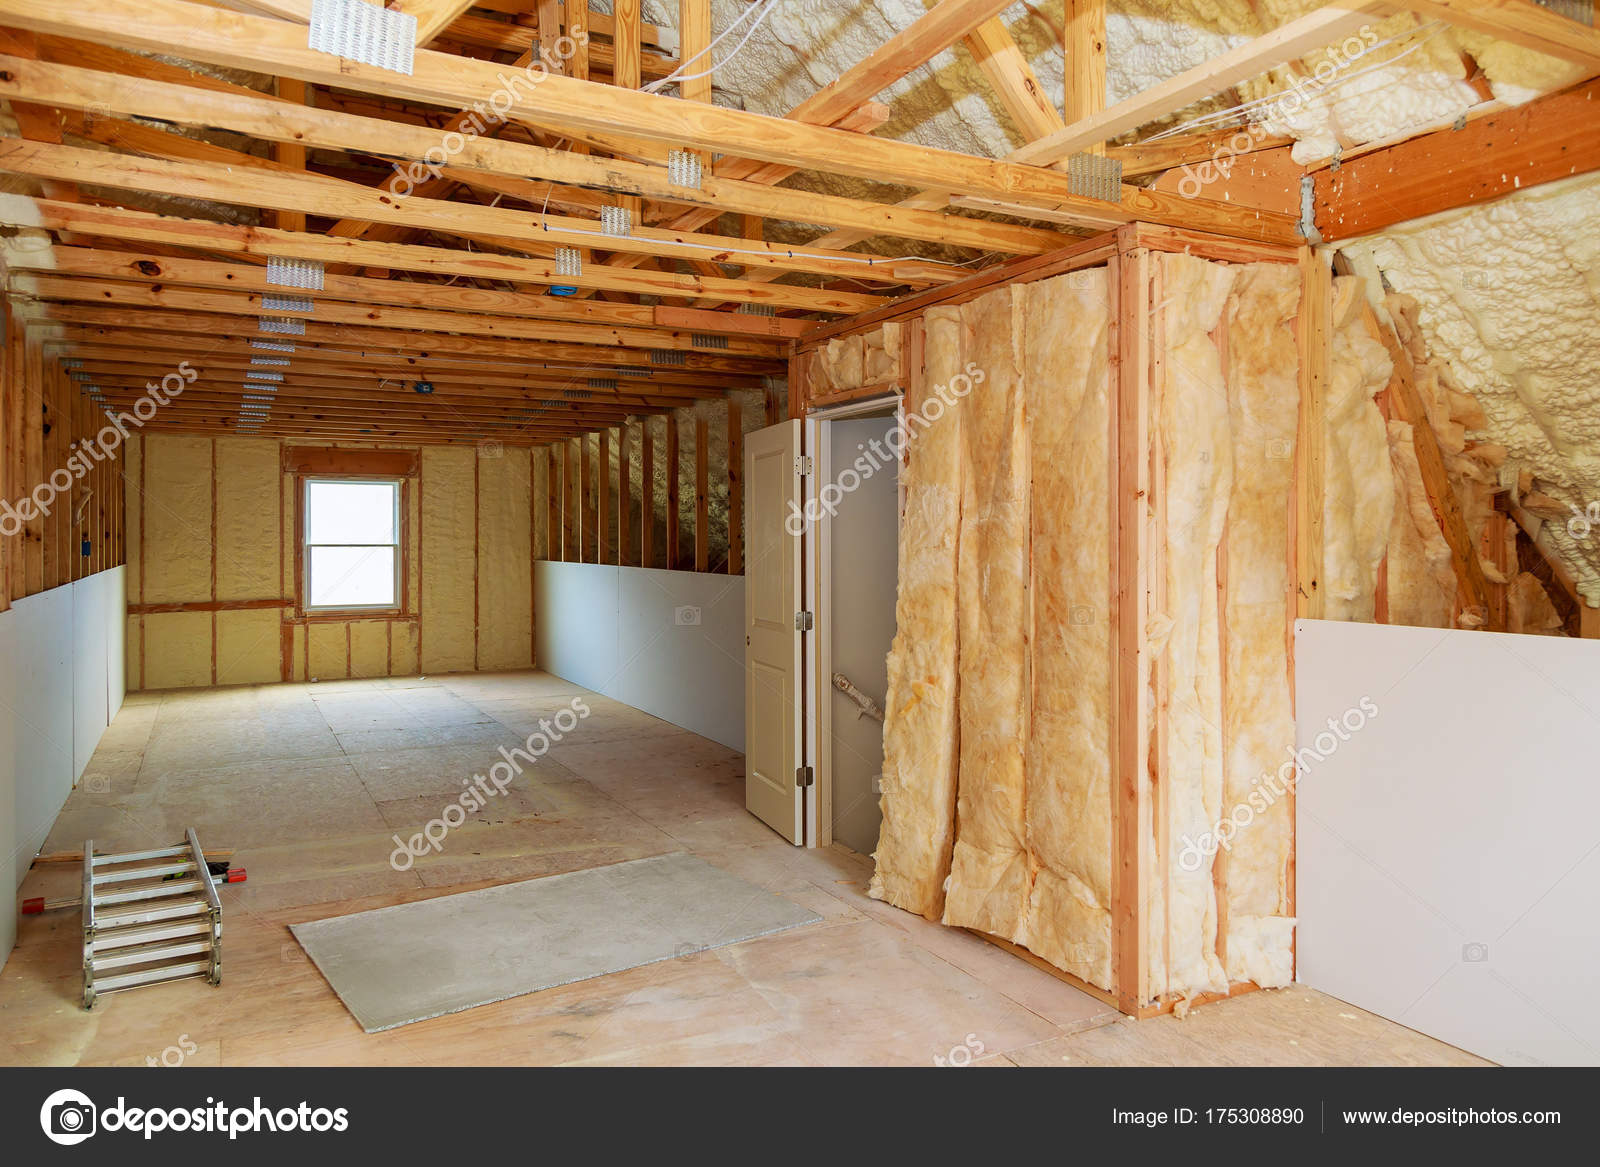 Thermal And Hidro Insulation Inside Wall Insulation In Wooden House,  Building Under Construction U2014 Photo By Photovs